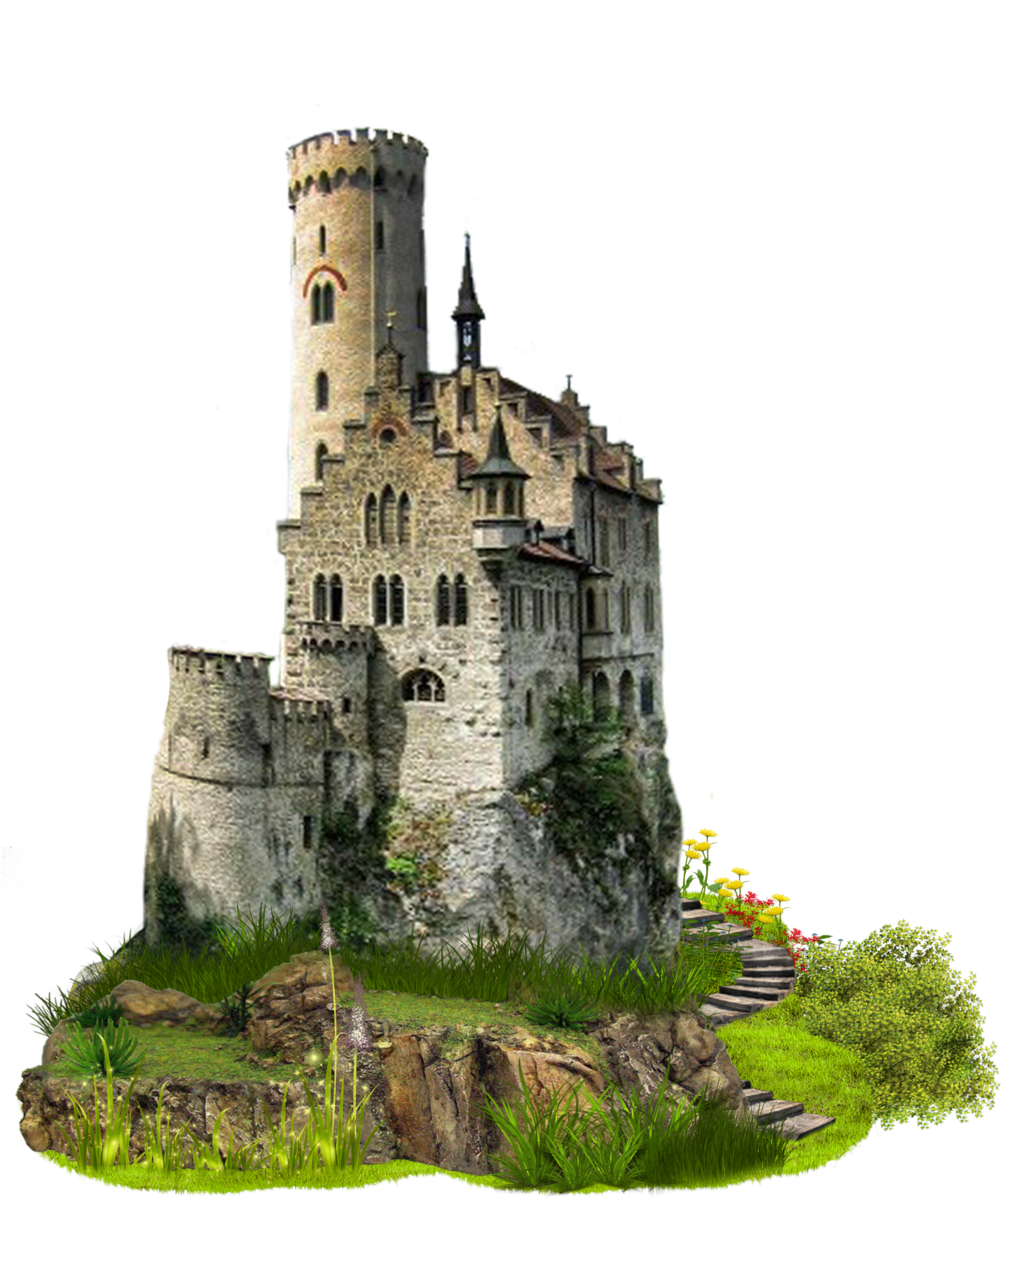 Fantasy castle png. Transparent images pluspng image